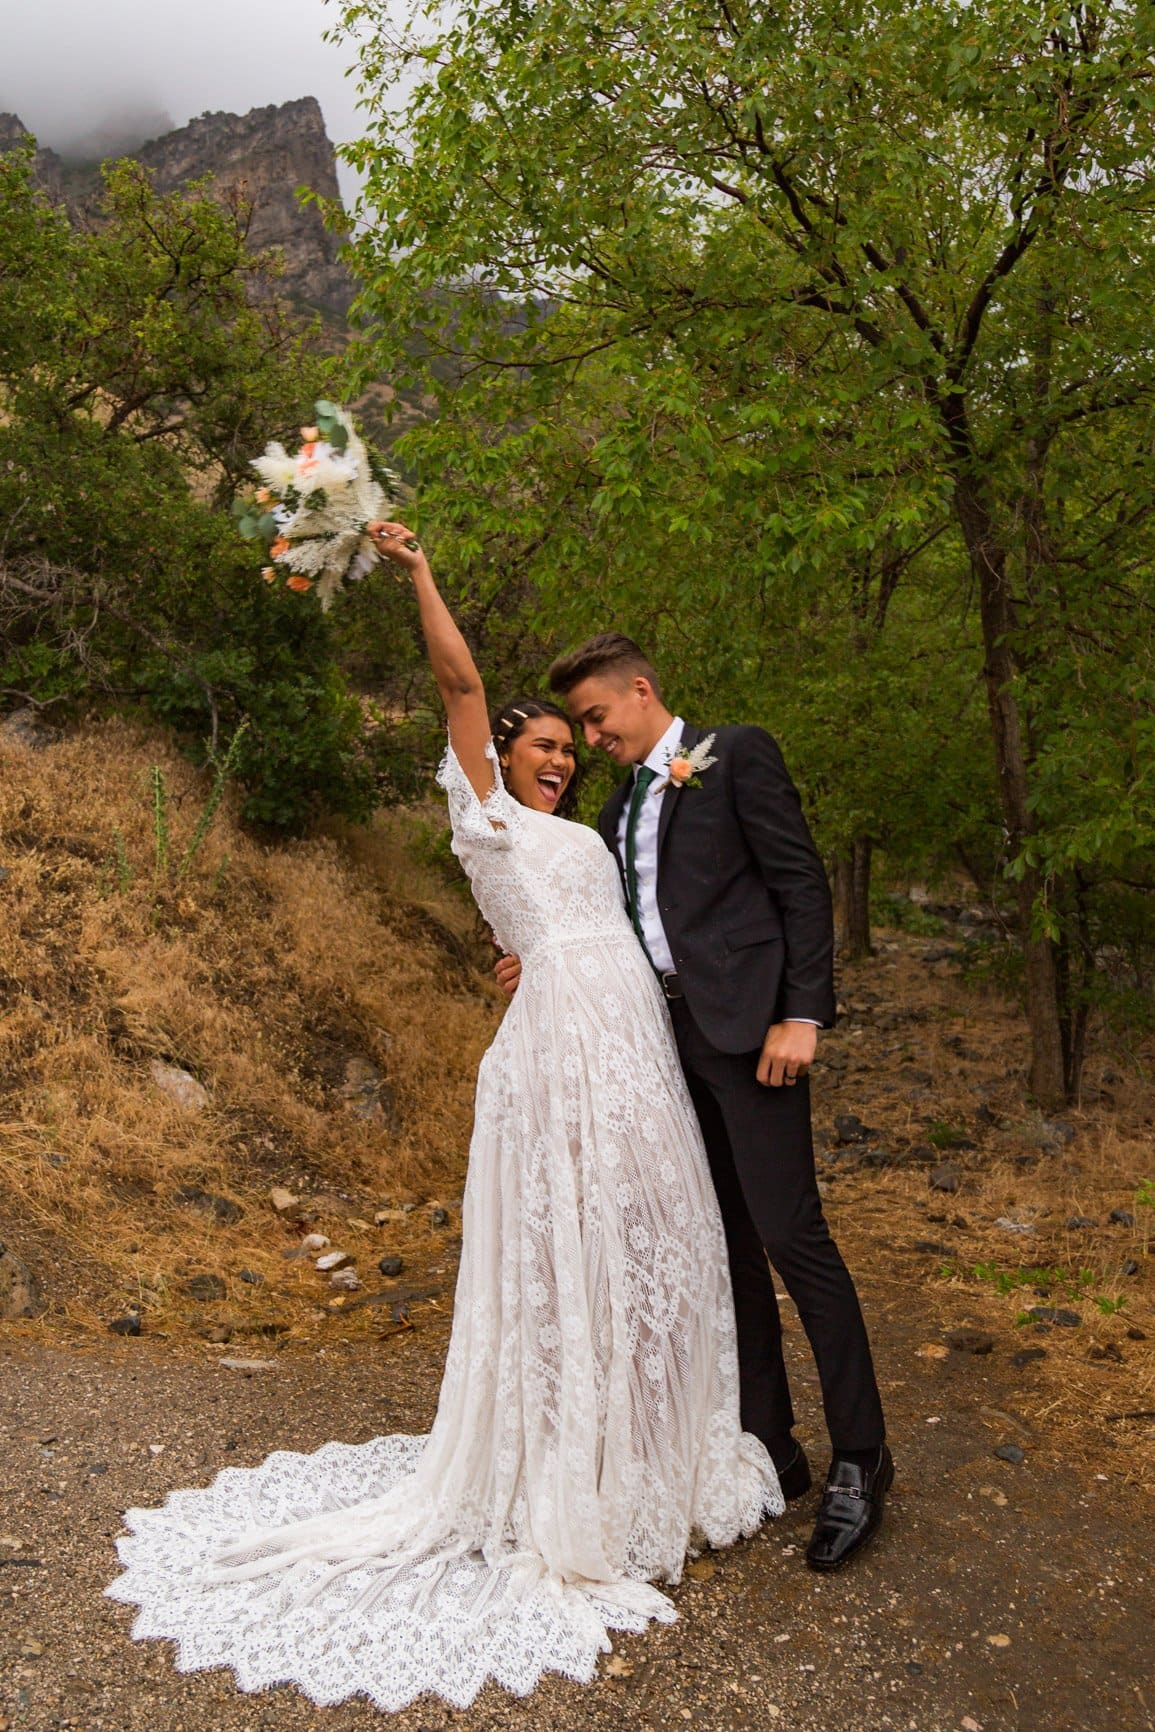 bride yells with joy over the love her her husband as they adventure in the outdoors